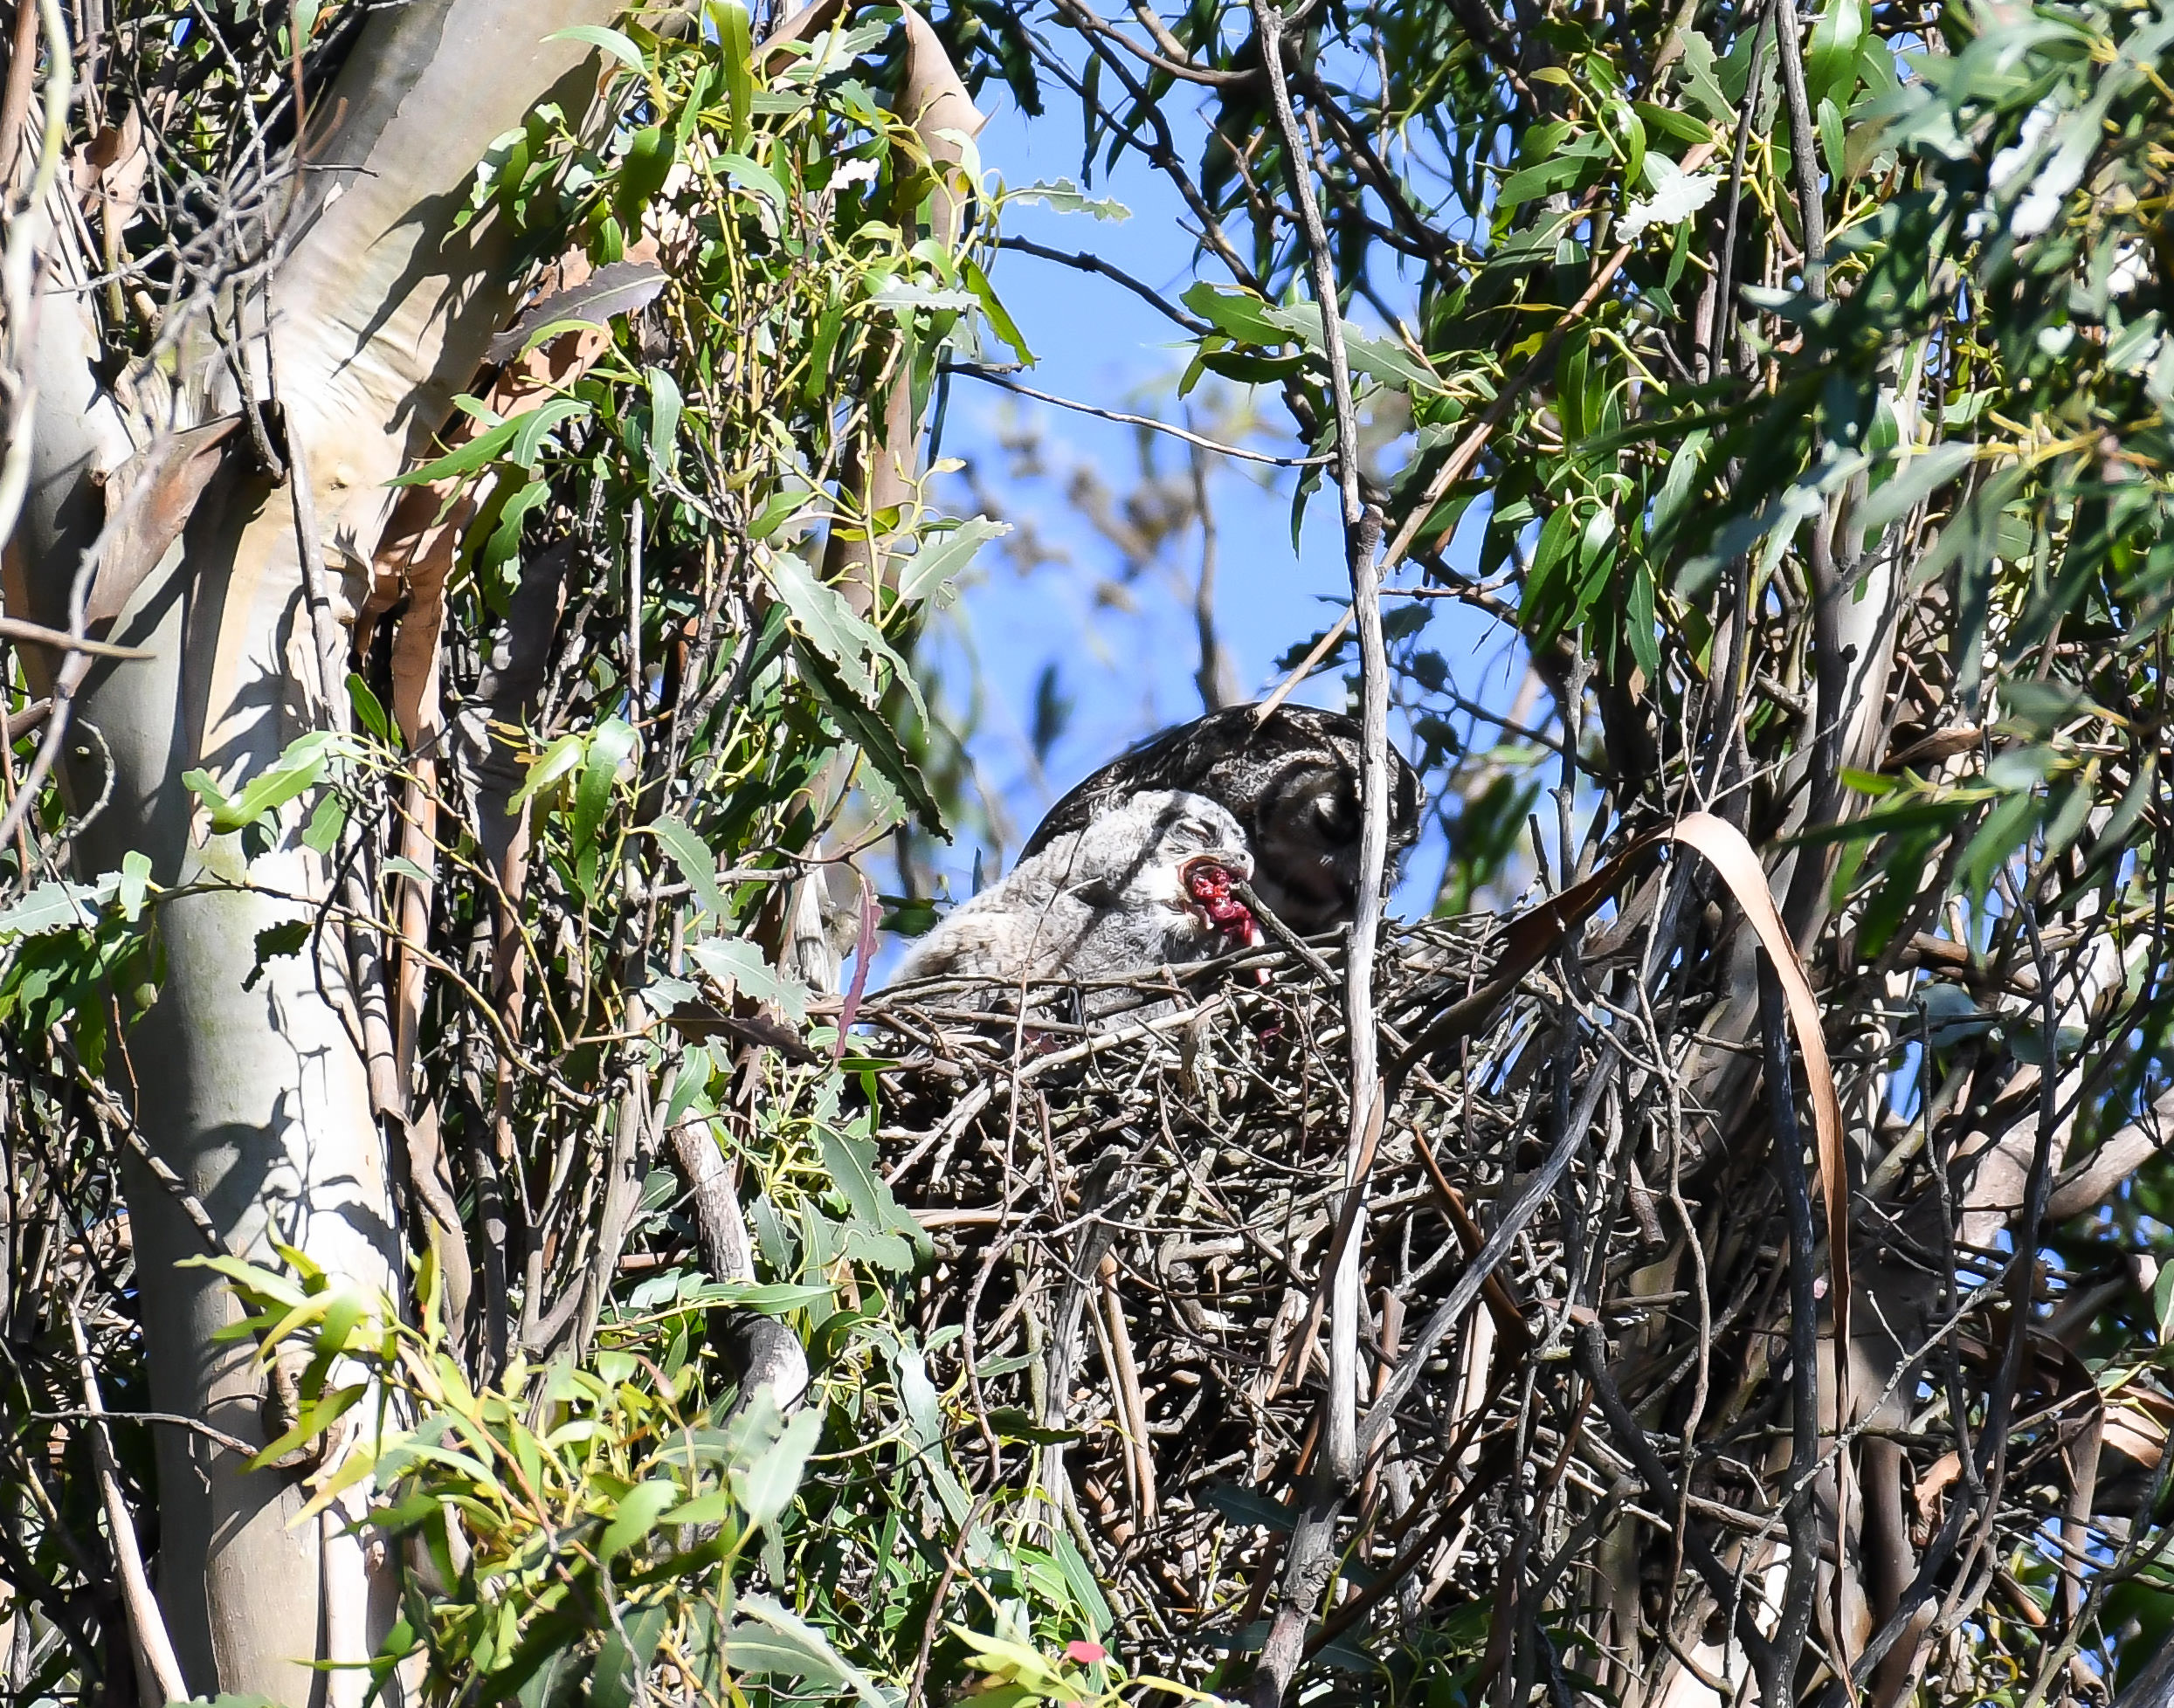 Baby Great Horned Owl in the nest eating